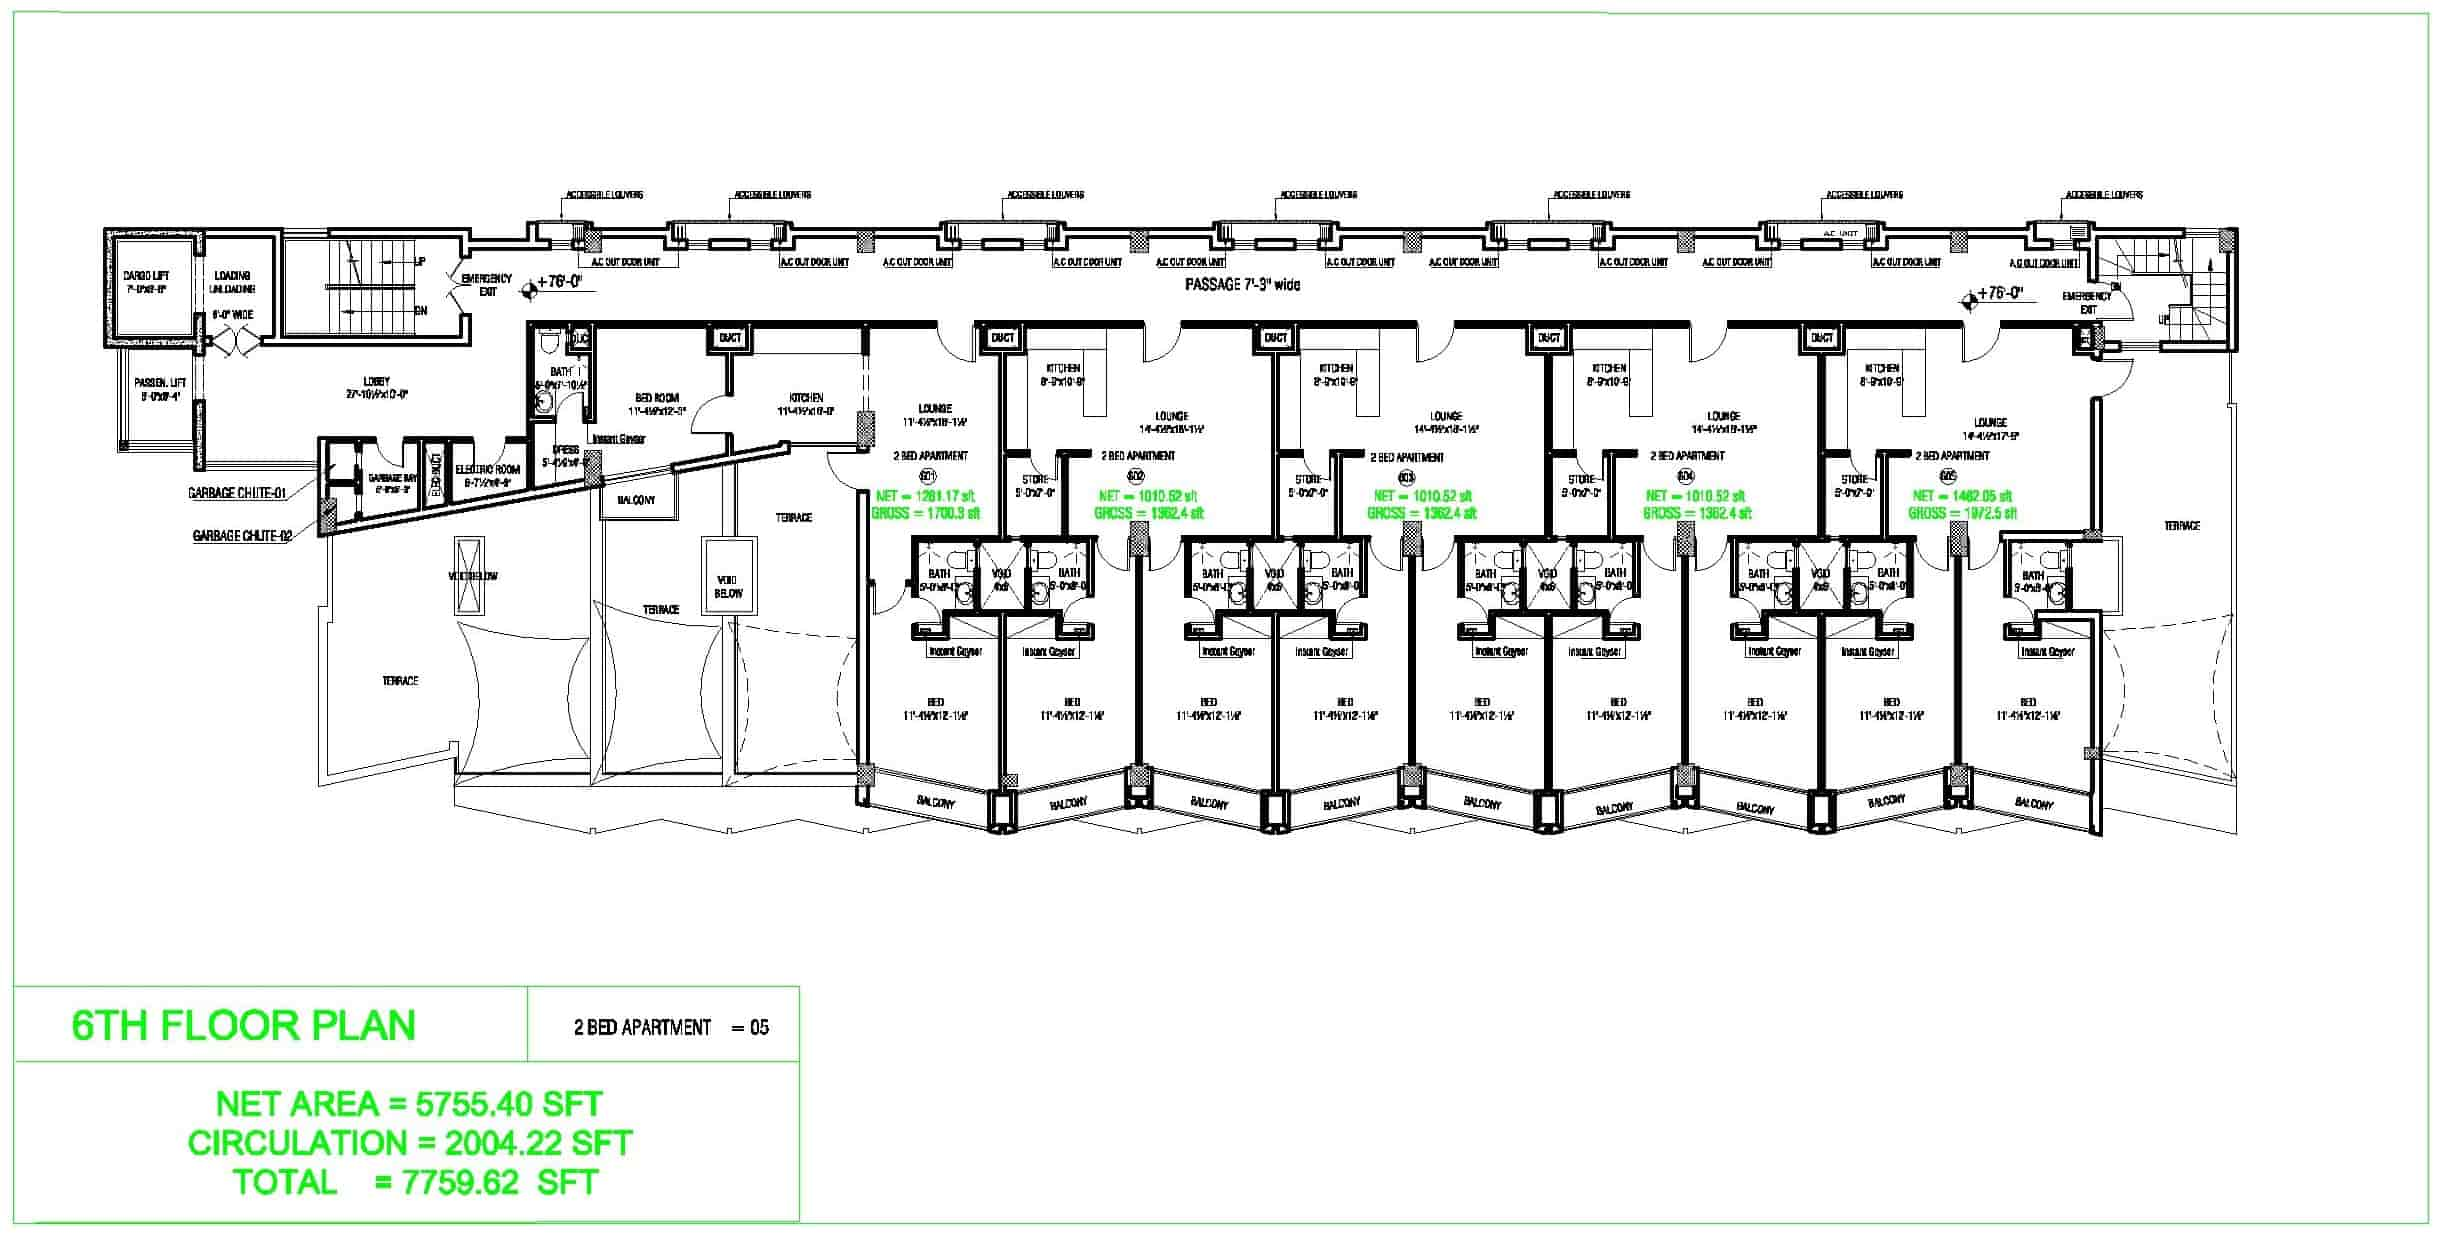 Liberty Tower 6th Floor Plan